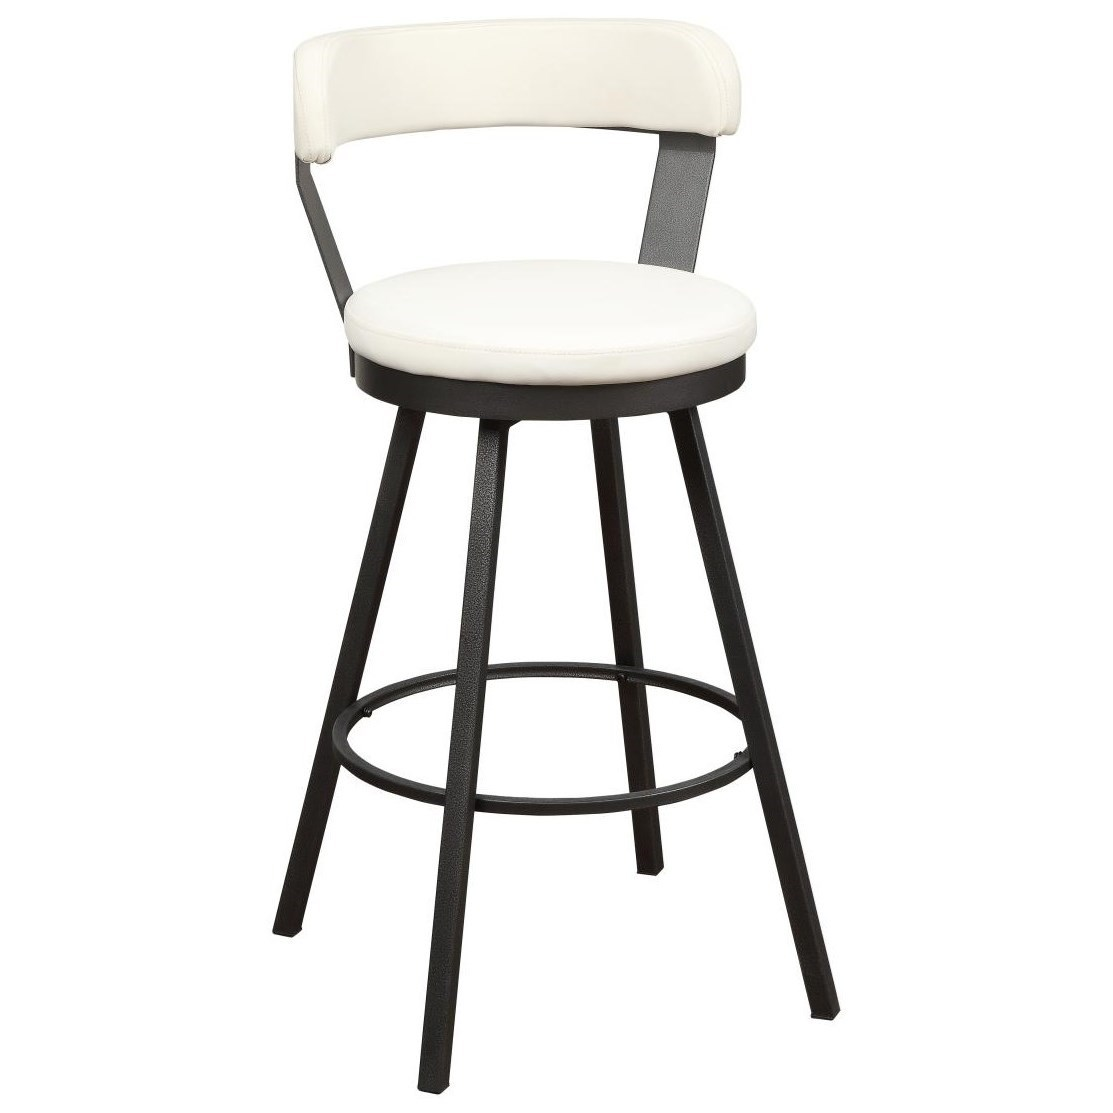 Appert Swivel Pub Height Chair by Homelegance at Value City Furniture